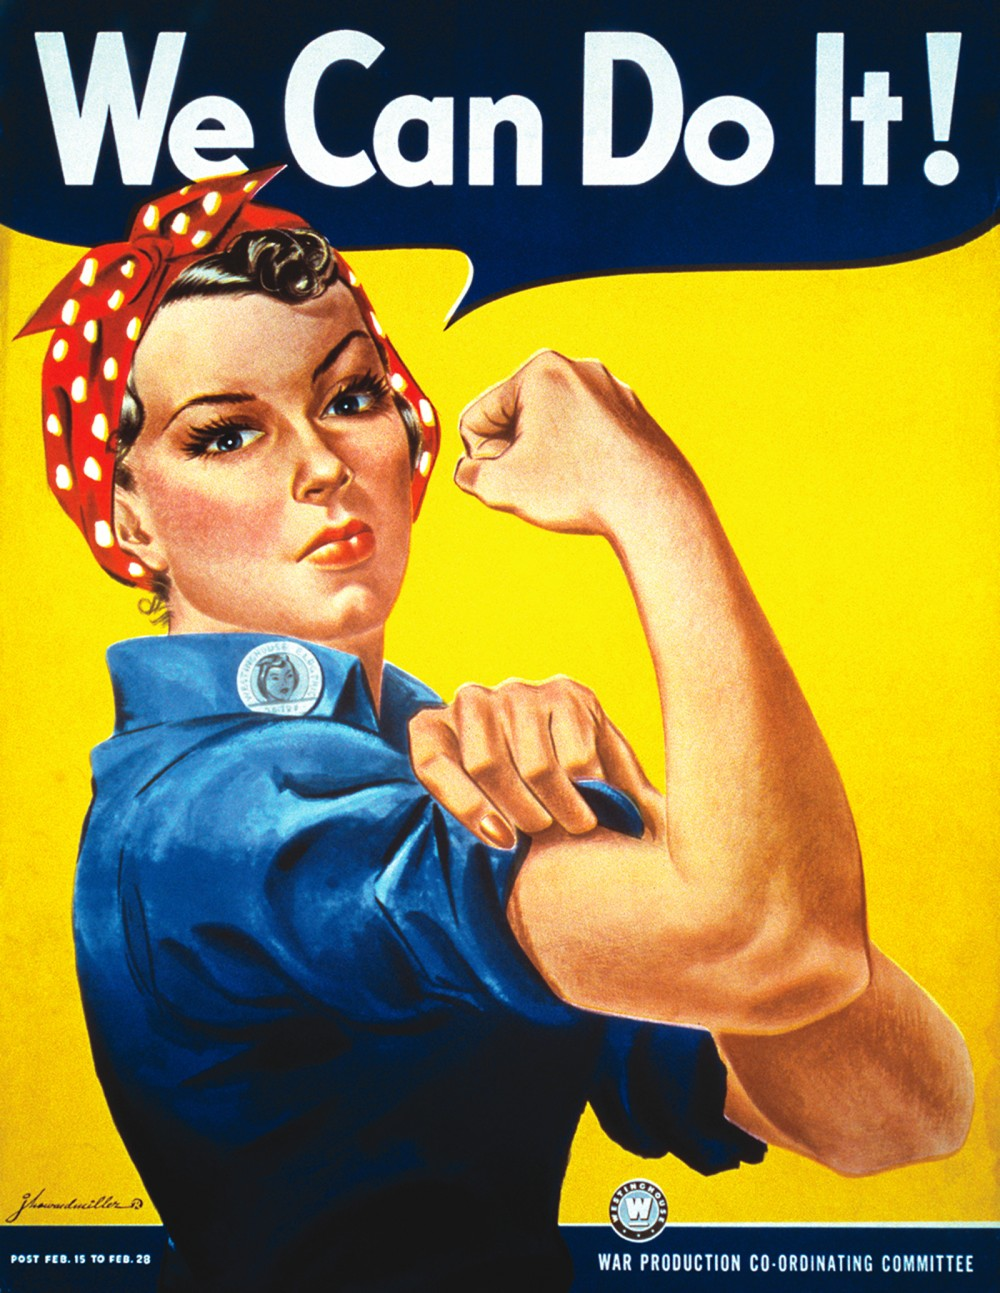 "Women came into the workforces in greater numbers than ever before during WWII. With vacancies left by deployed men and new positions created by war production, posters like this iconic ""We Can Do It!"" urged women to support the war effort by going to work in America's factories. Poster for Westinghouse, 1942. Wikimedia, http://commons.wikimedia.org/wiki/File:We_Can_Do_It!.jpg."